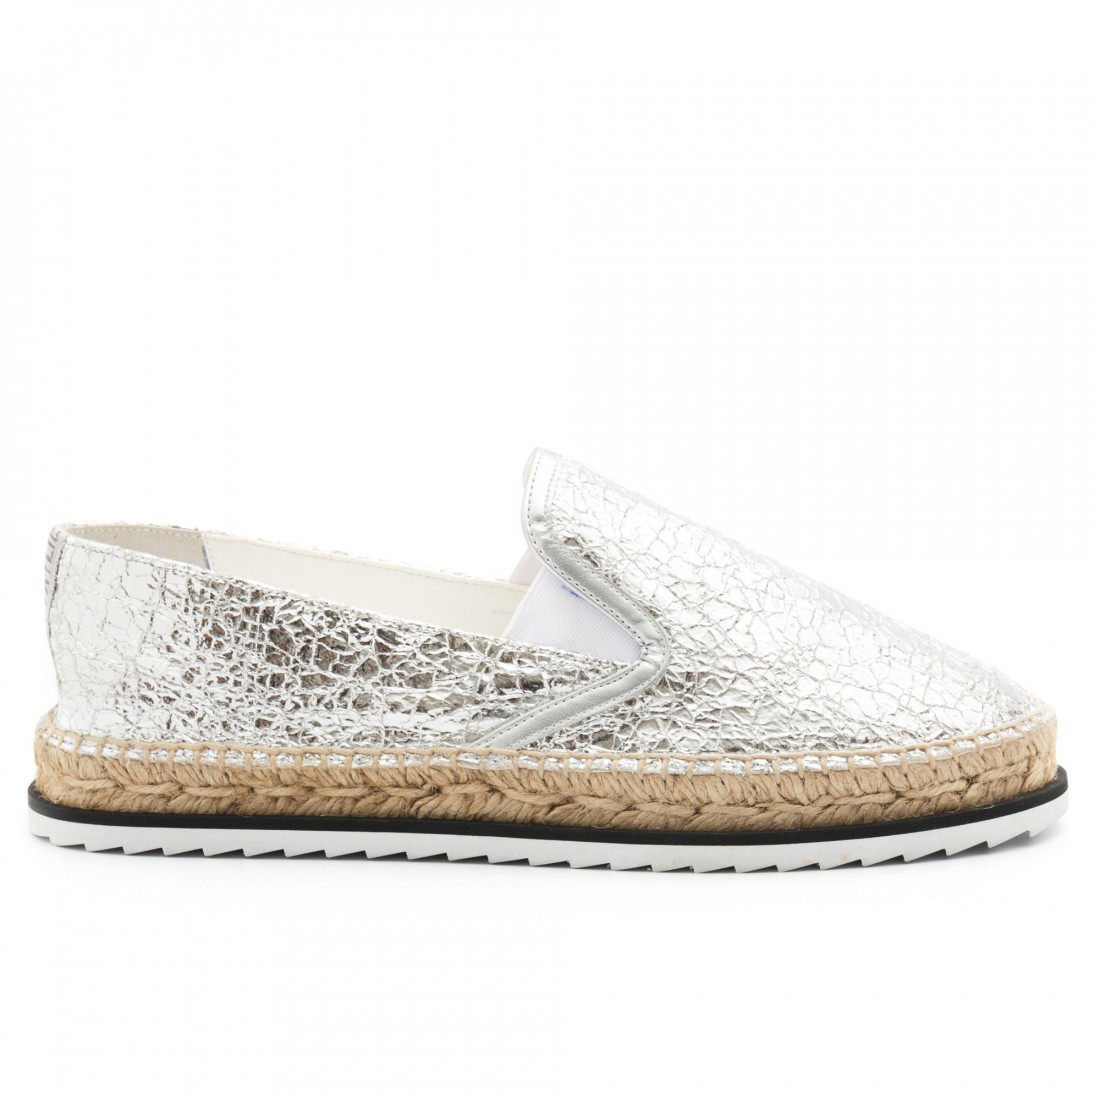 loafers woman kendall kylie envvysilver 4676